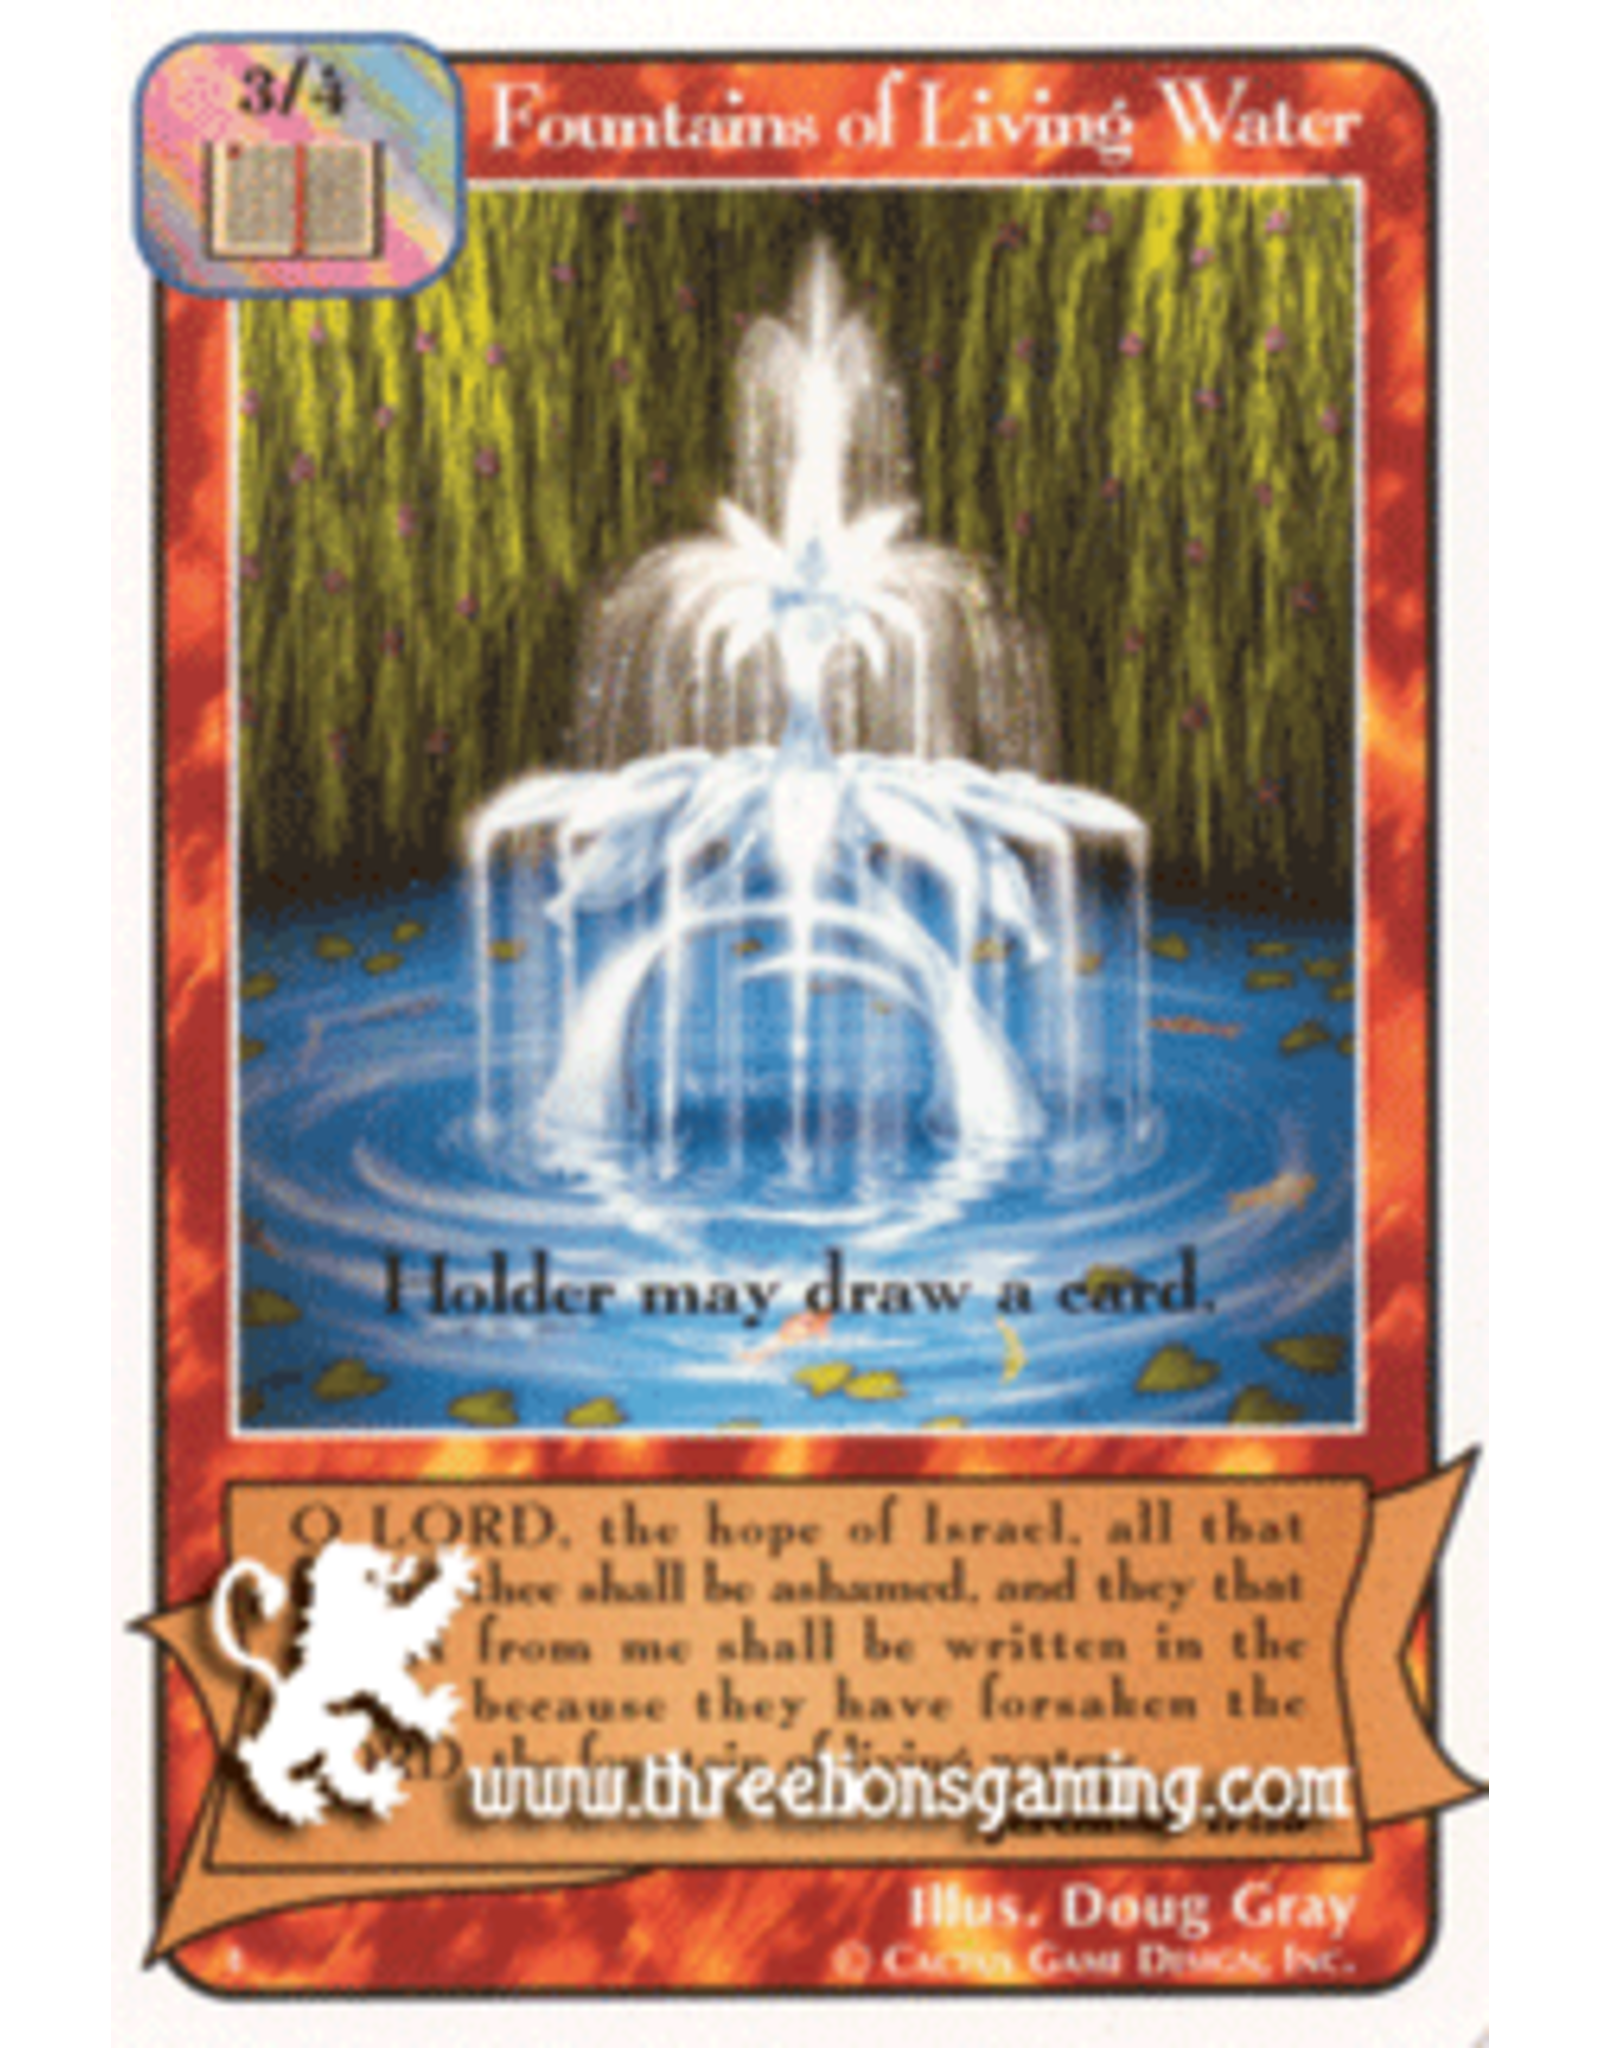 E/F: Fountains of Living Water